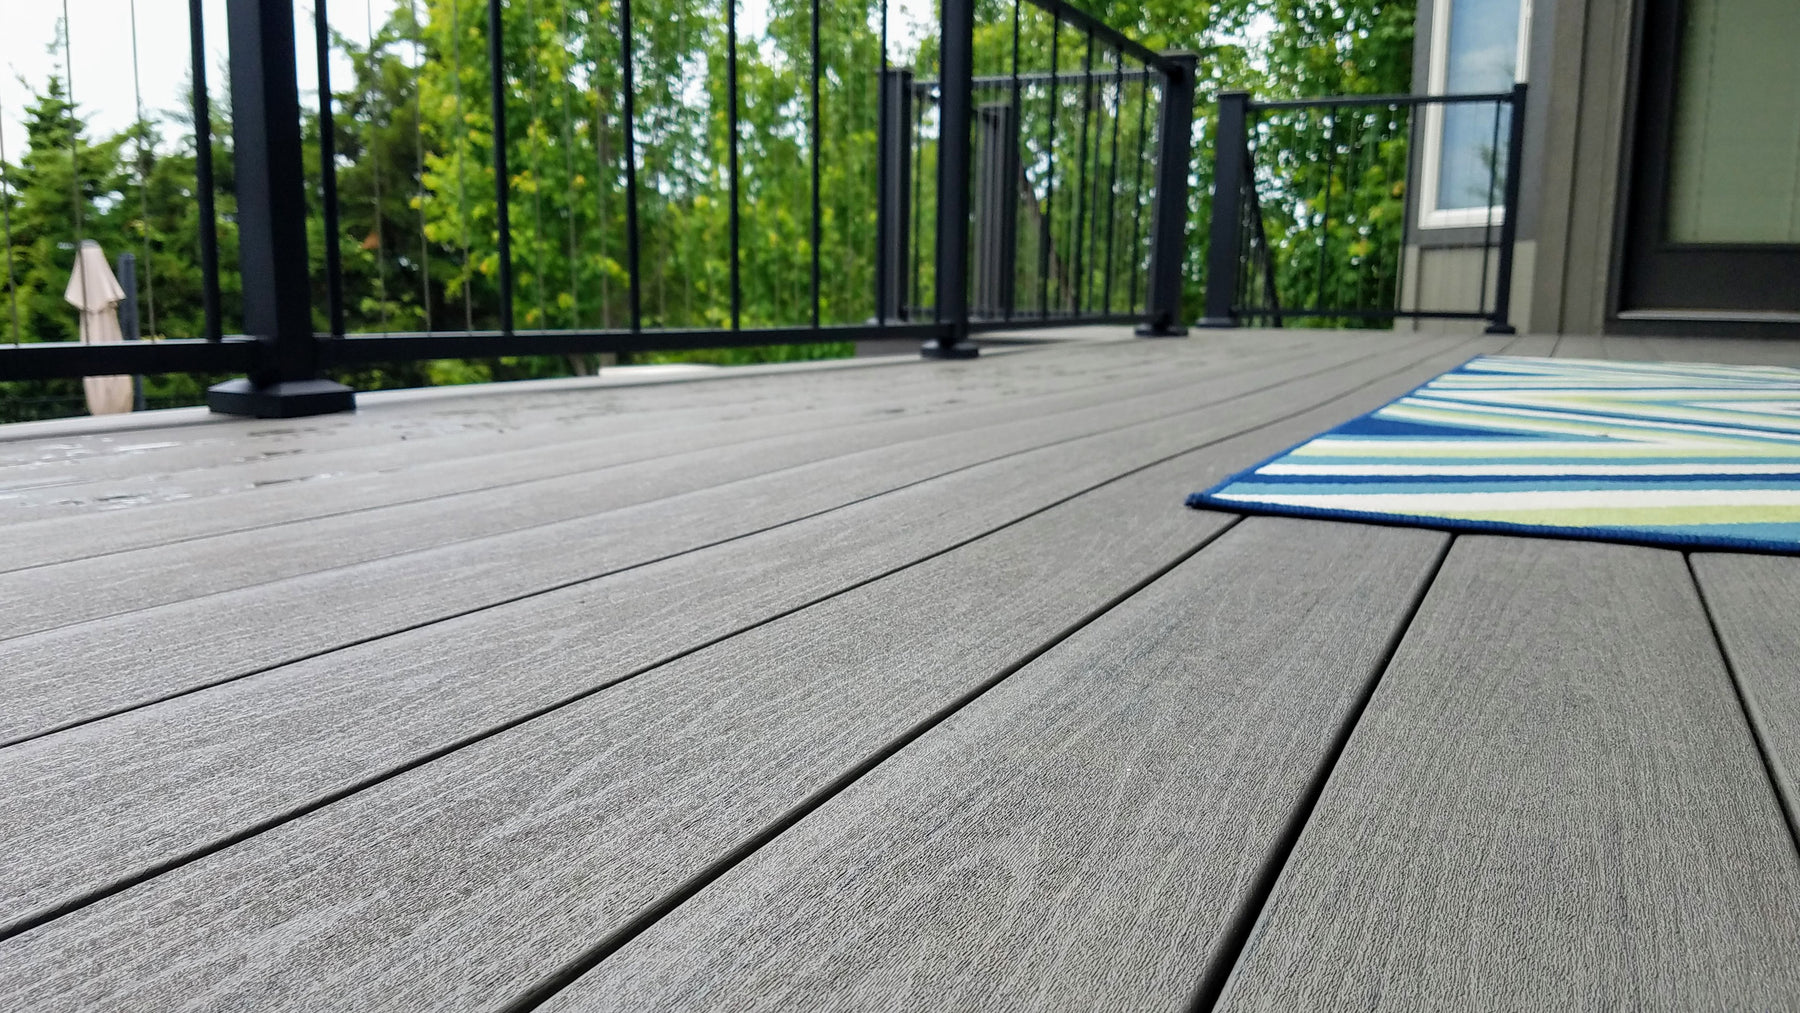 Capped Composite Decking has disitinct surfaces and textures with beautiul natural colors